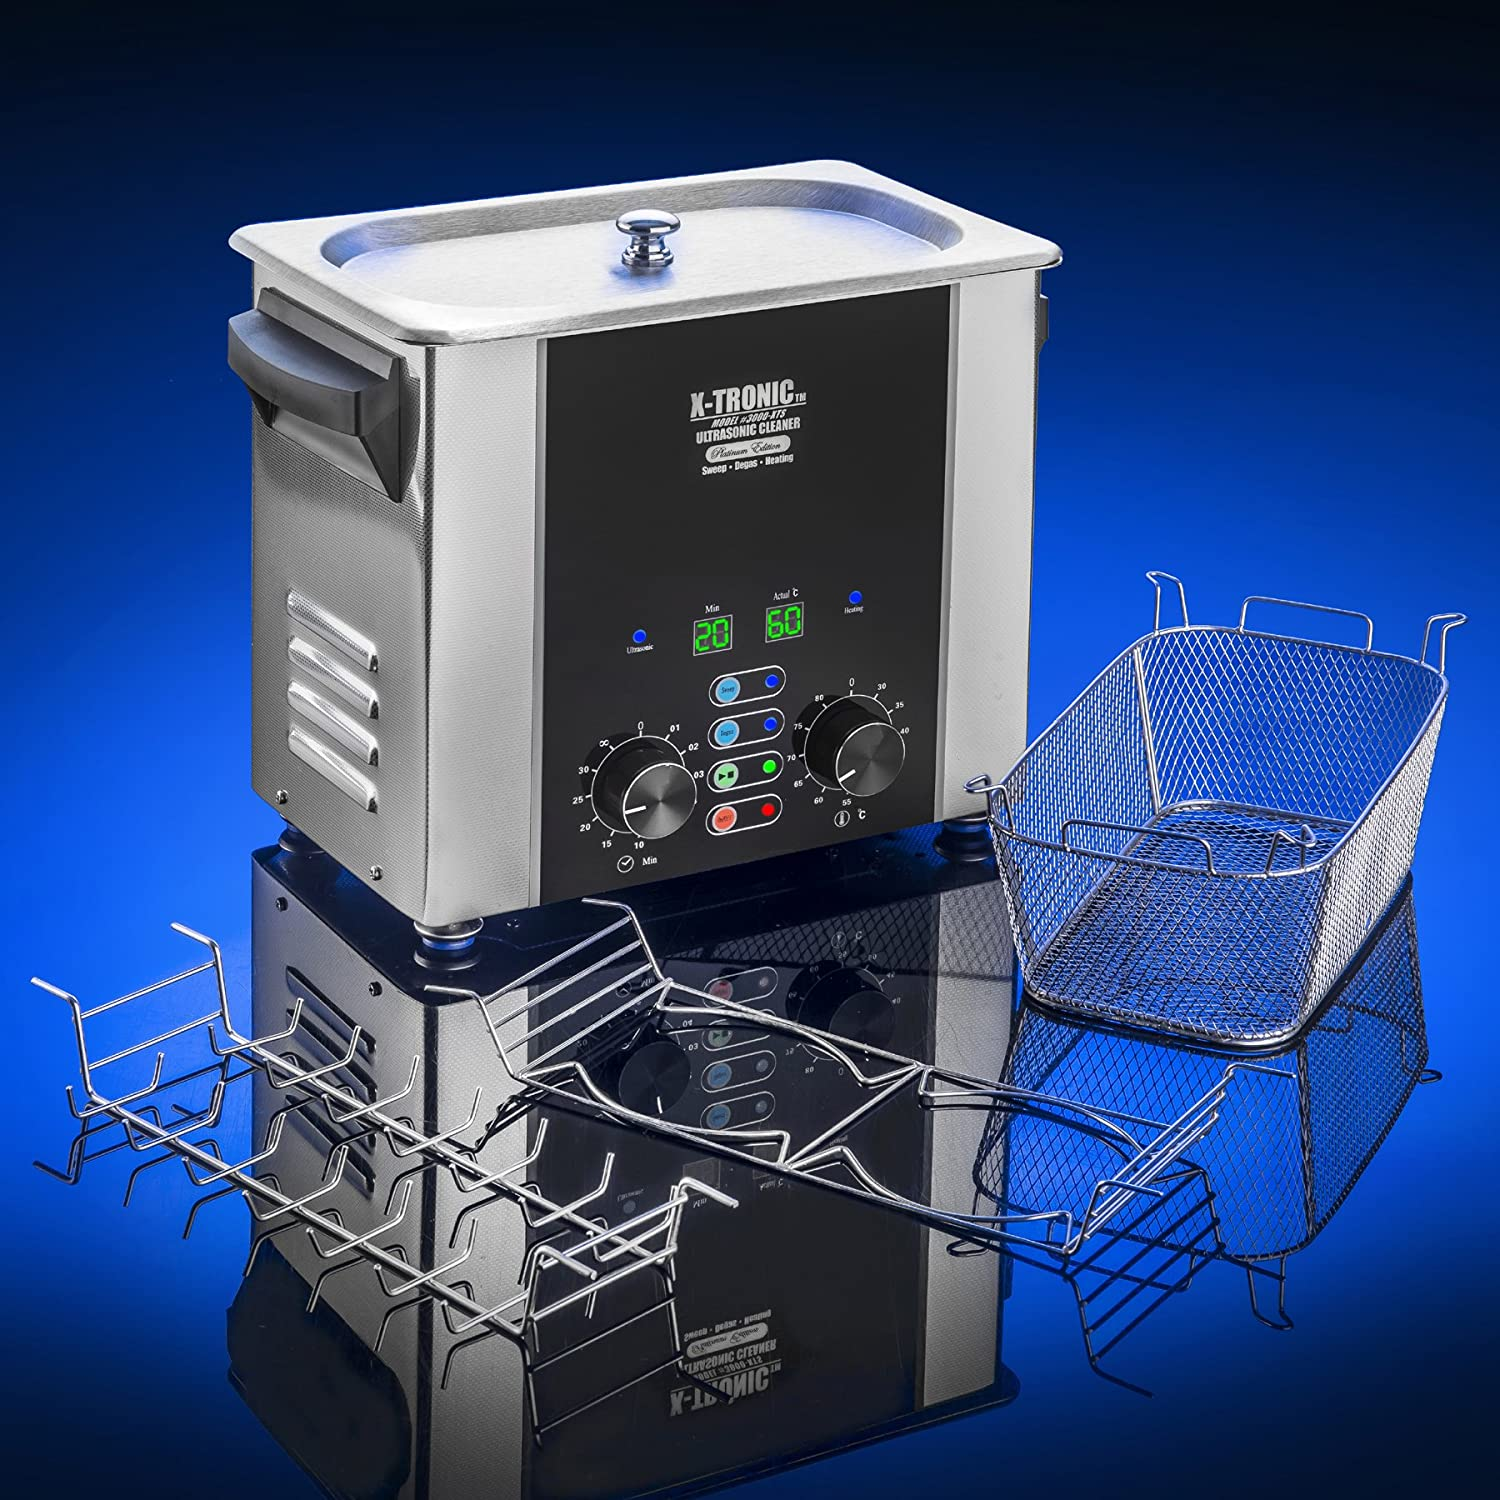 X Tronic 2 Liter 3 6 Literplatinum Edition Resistorcalculatorfreeledcalculadora Xtronic Free Electronic Stainless Commercial Ultrasonic Cleaners Time Temp Led Displays Sweep Degas S Basket